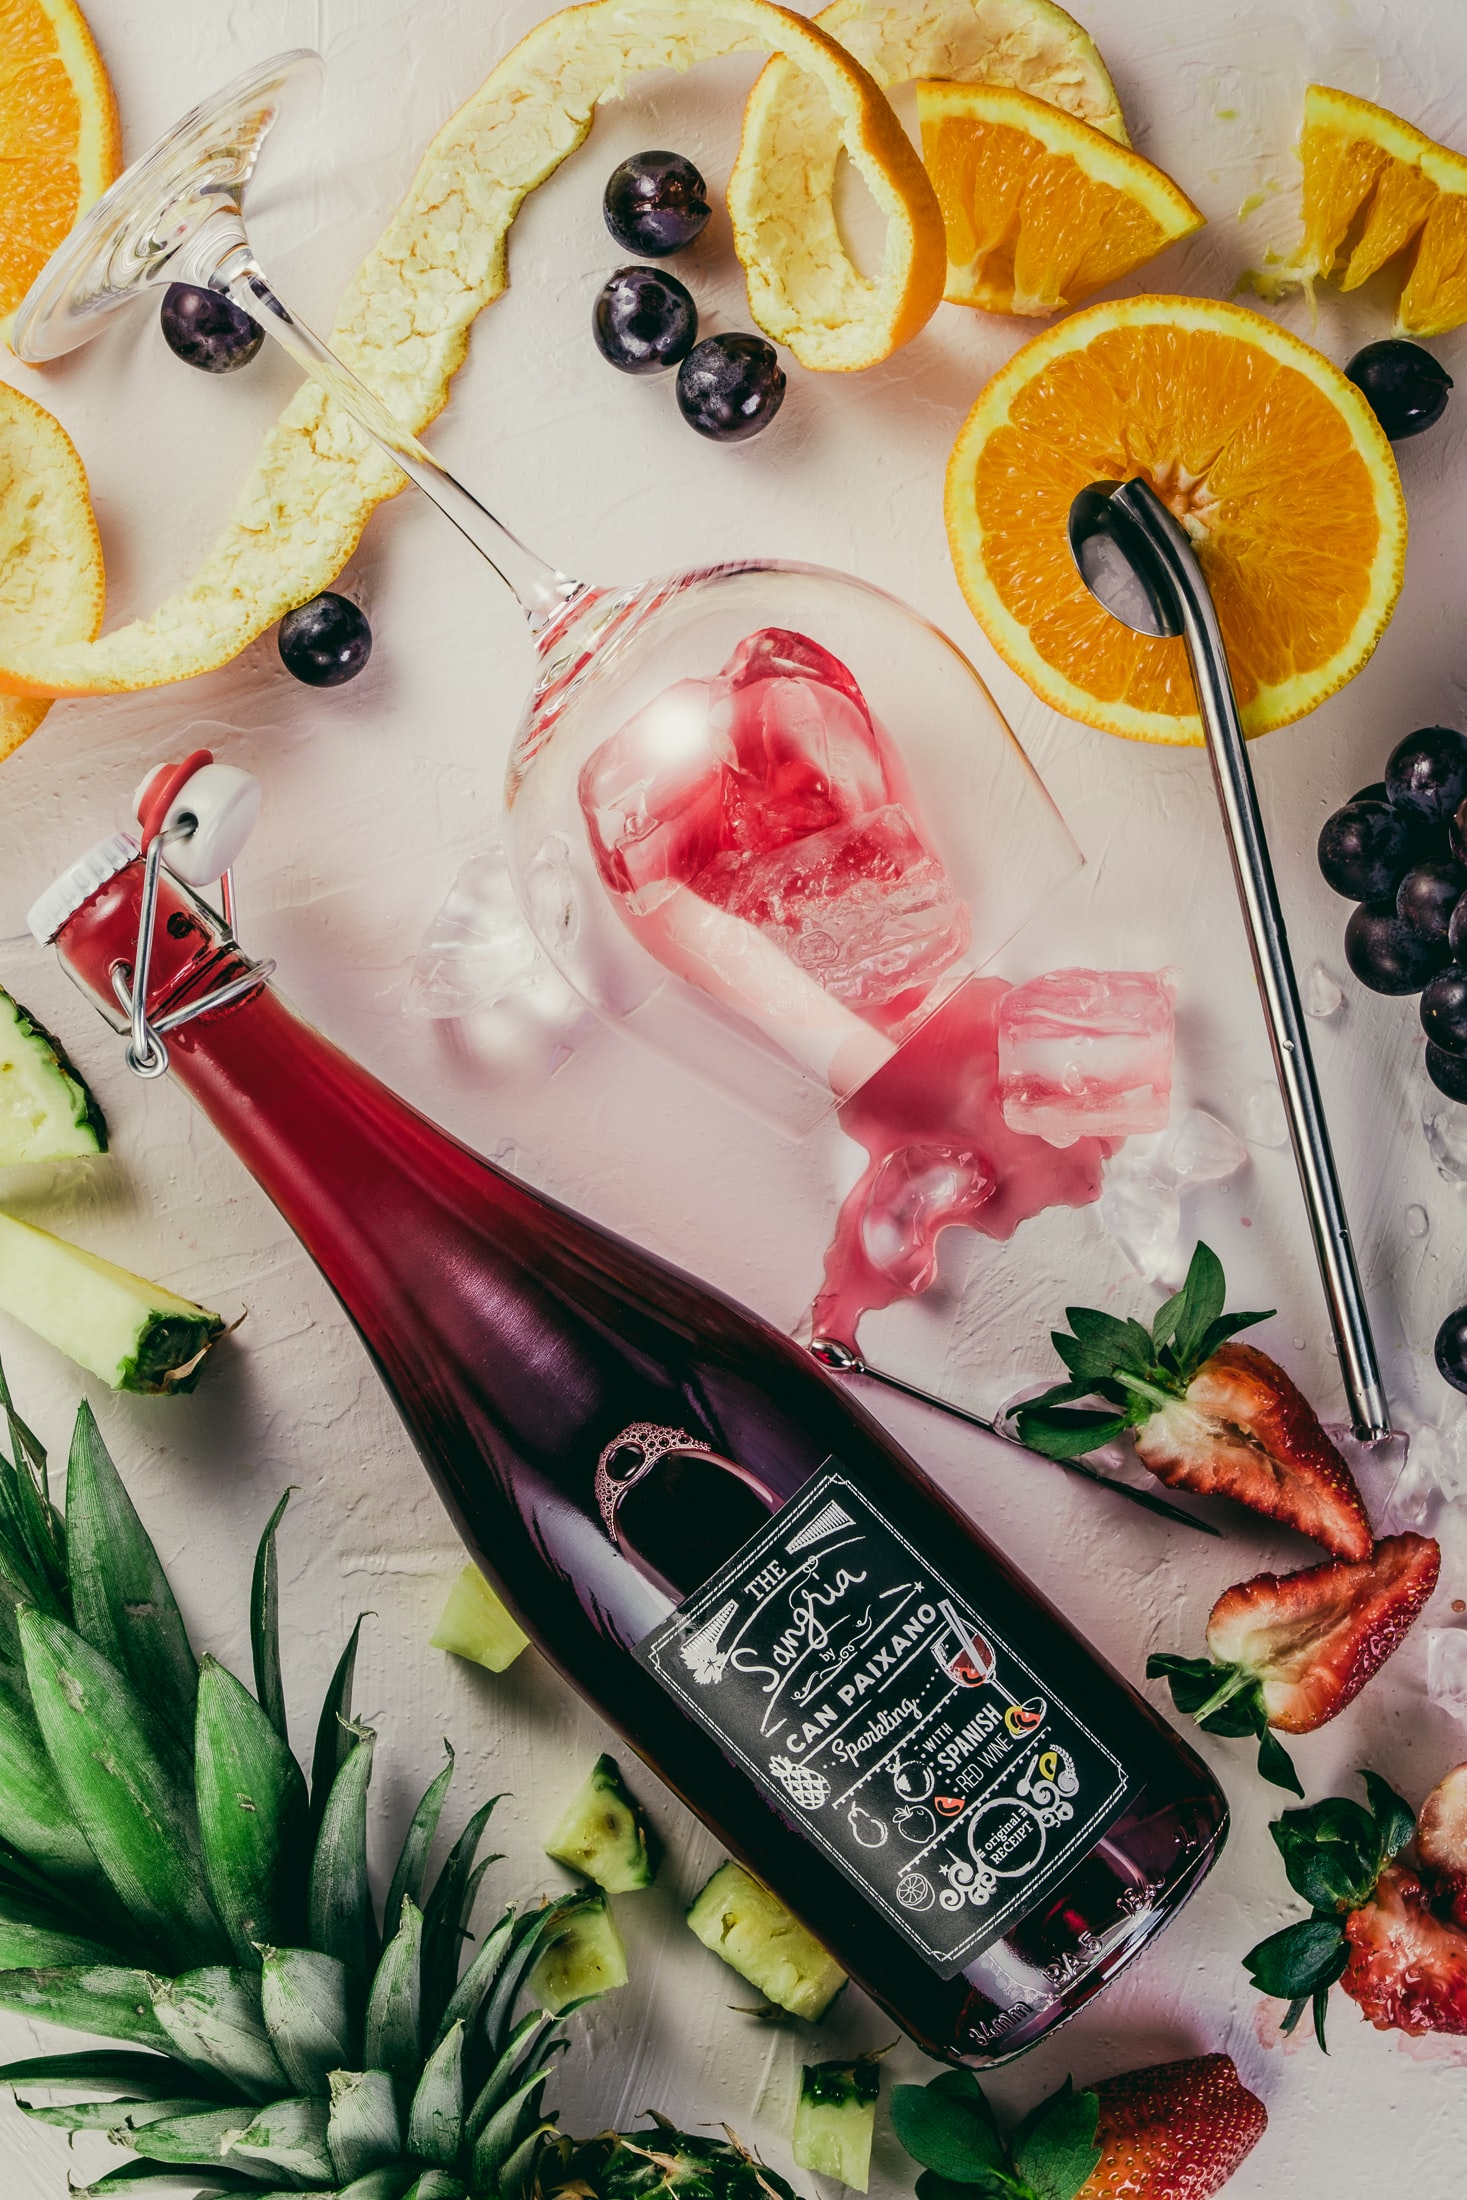 flat-lay photograph of sliced fruits, swing top bottle, and wine glass